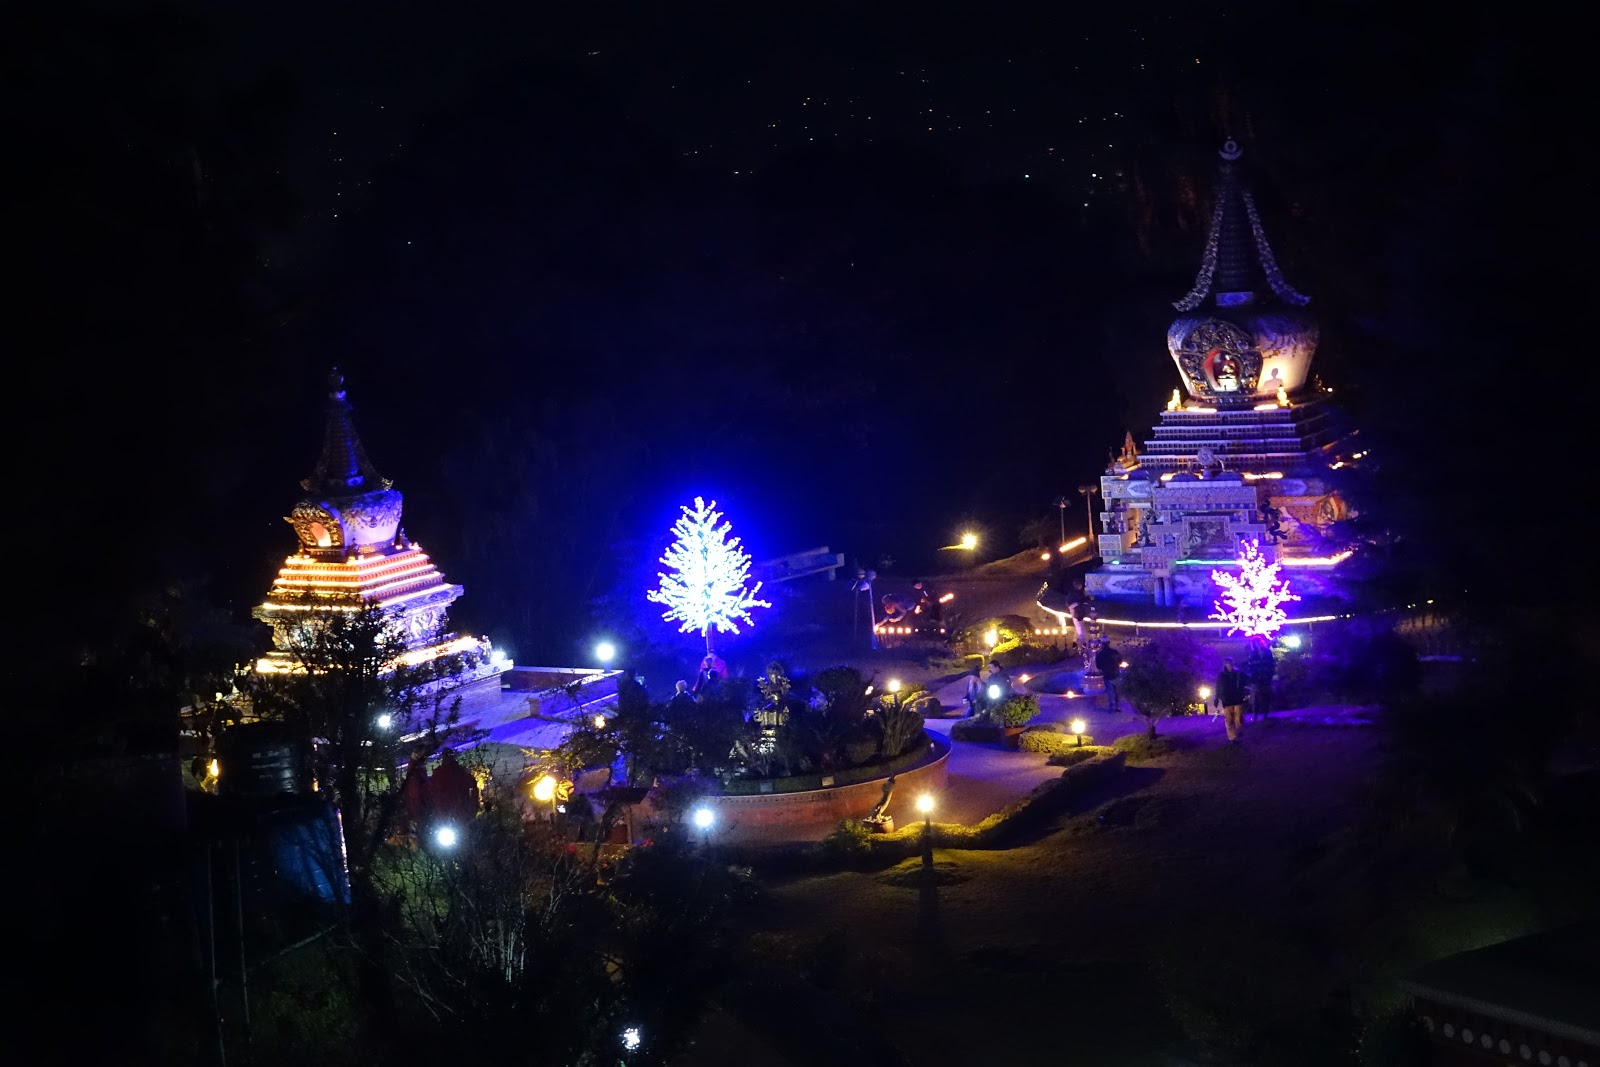 Kopan Monastery at Night, Khensur Rinpoche Lama Lhundrup's stupa to the left and Geshe Lama Konchog's stupa to the right and new light offerings on the trees, Nepal, December 2014. Photo by Ven. Roger Kunsang.